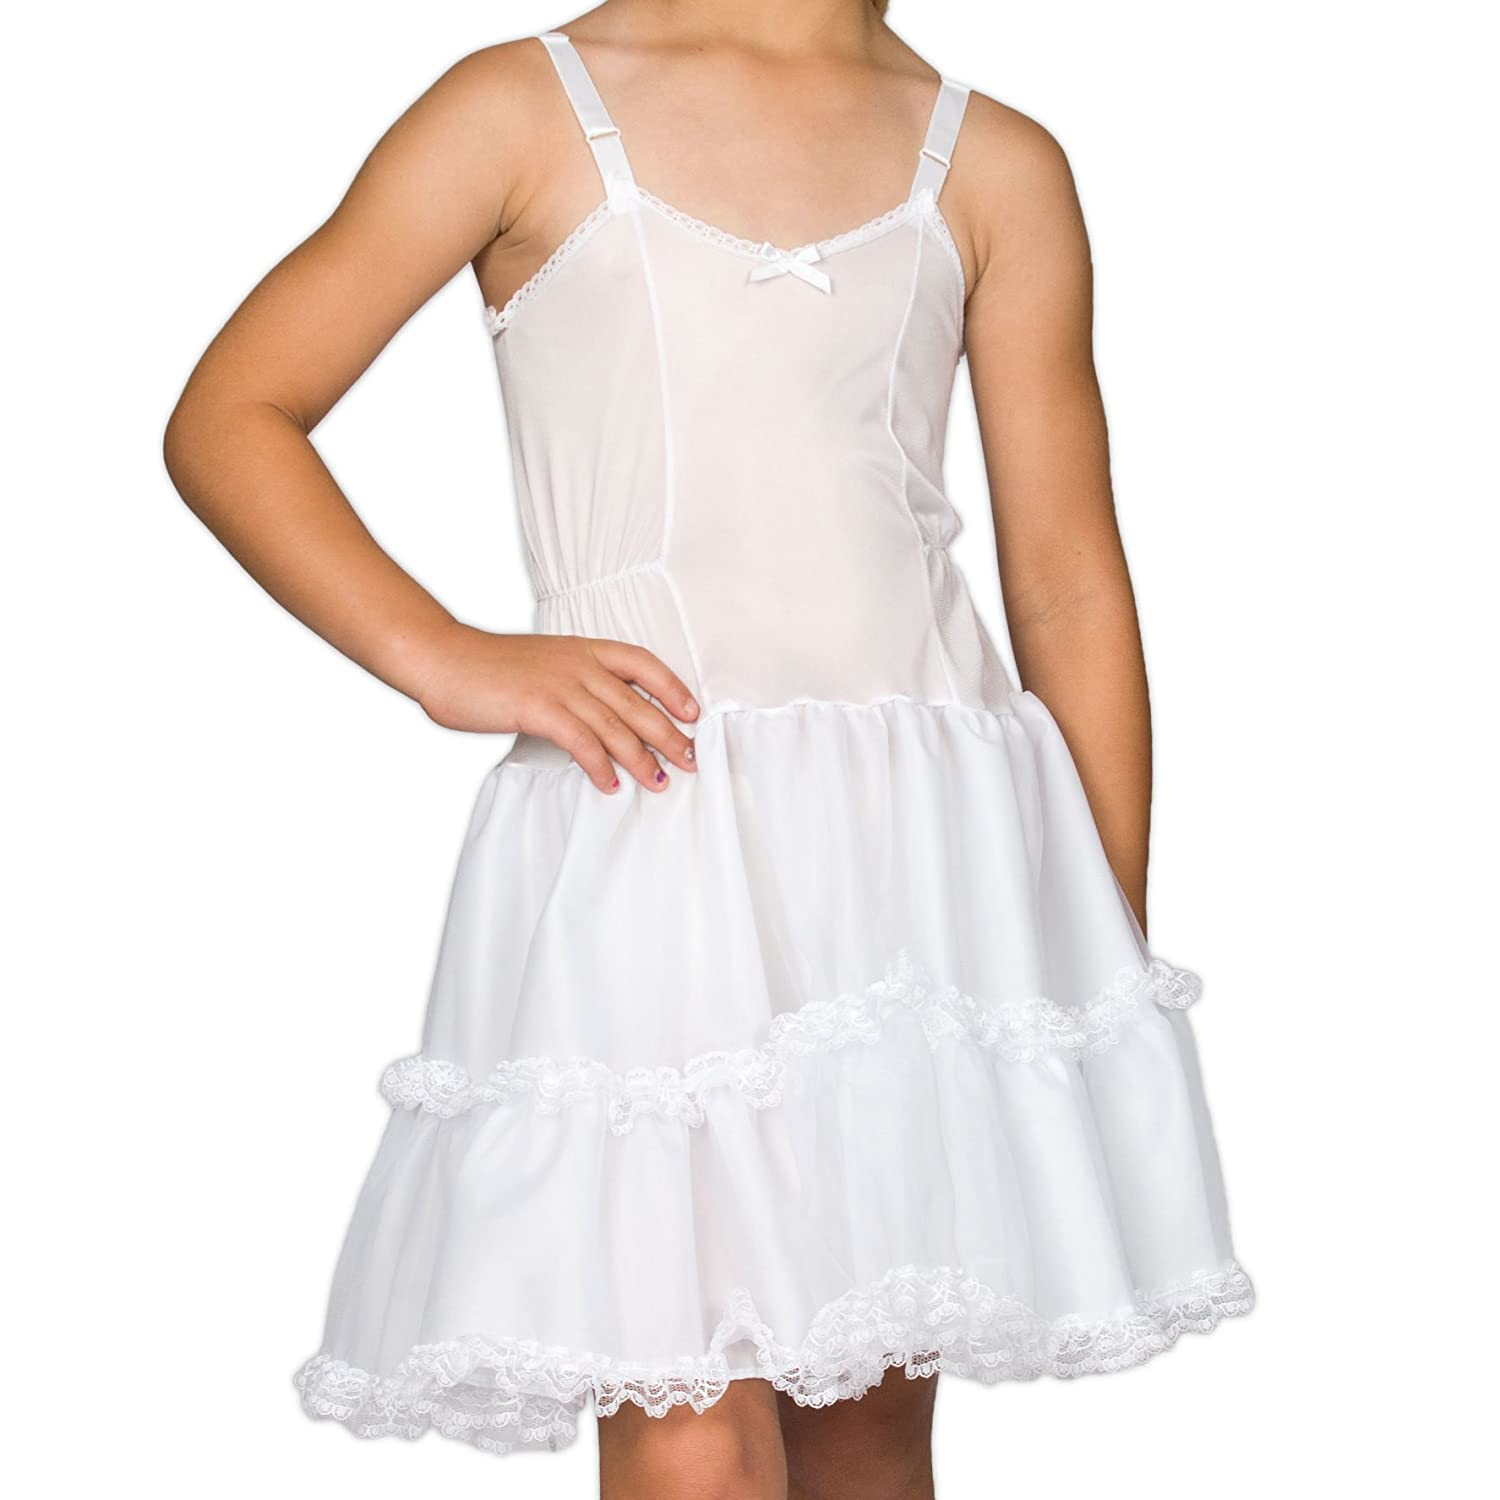 1124f244a0f30 I.C. Collections Girls White Bouffant Slip Petticoat - Lace Embellished,  8-14